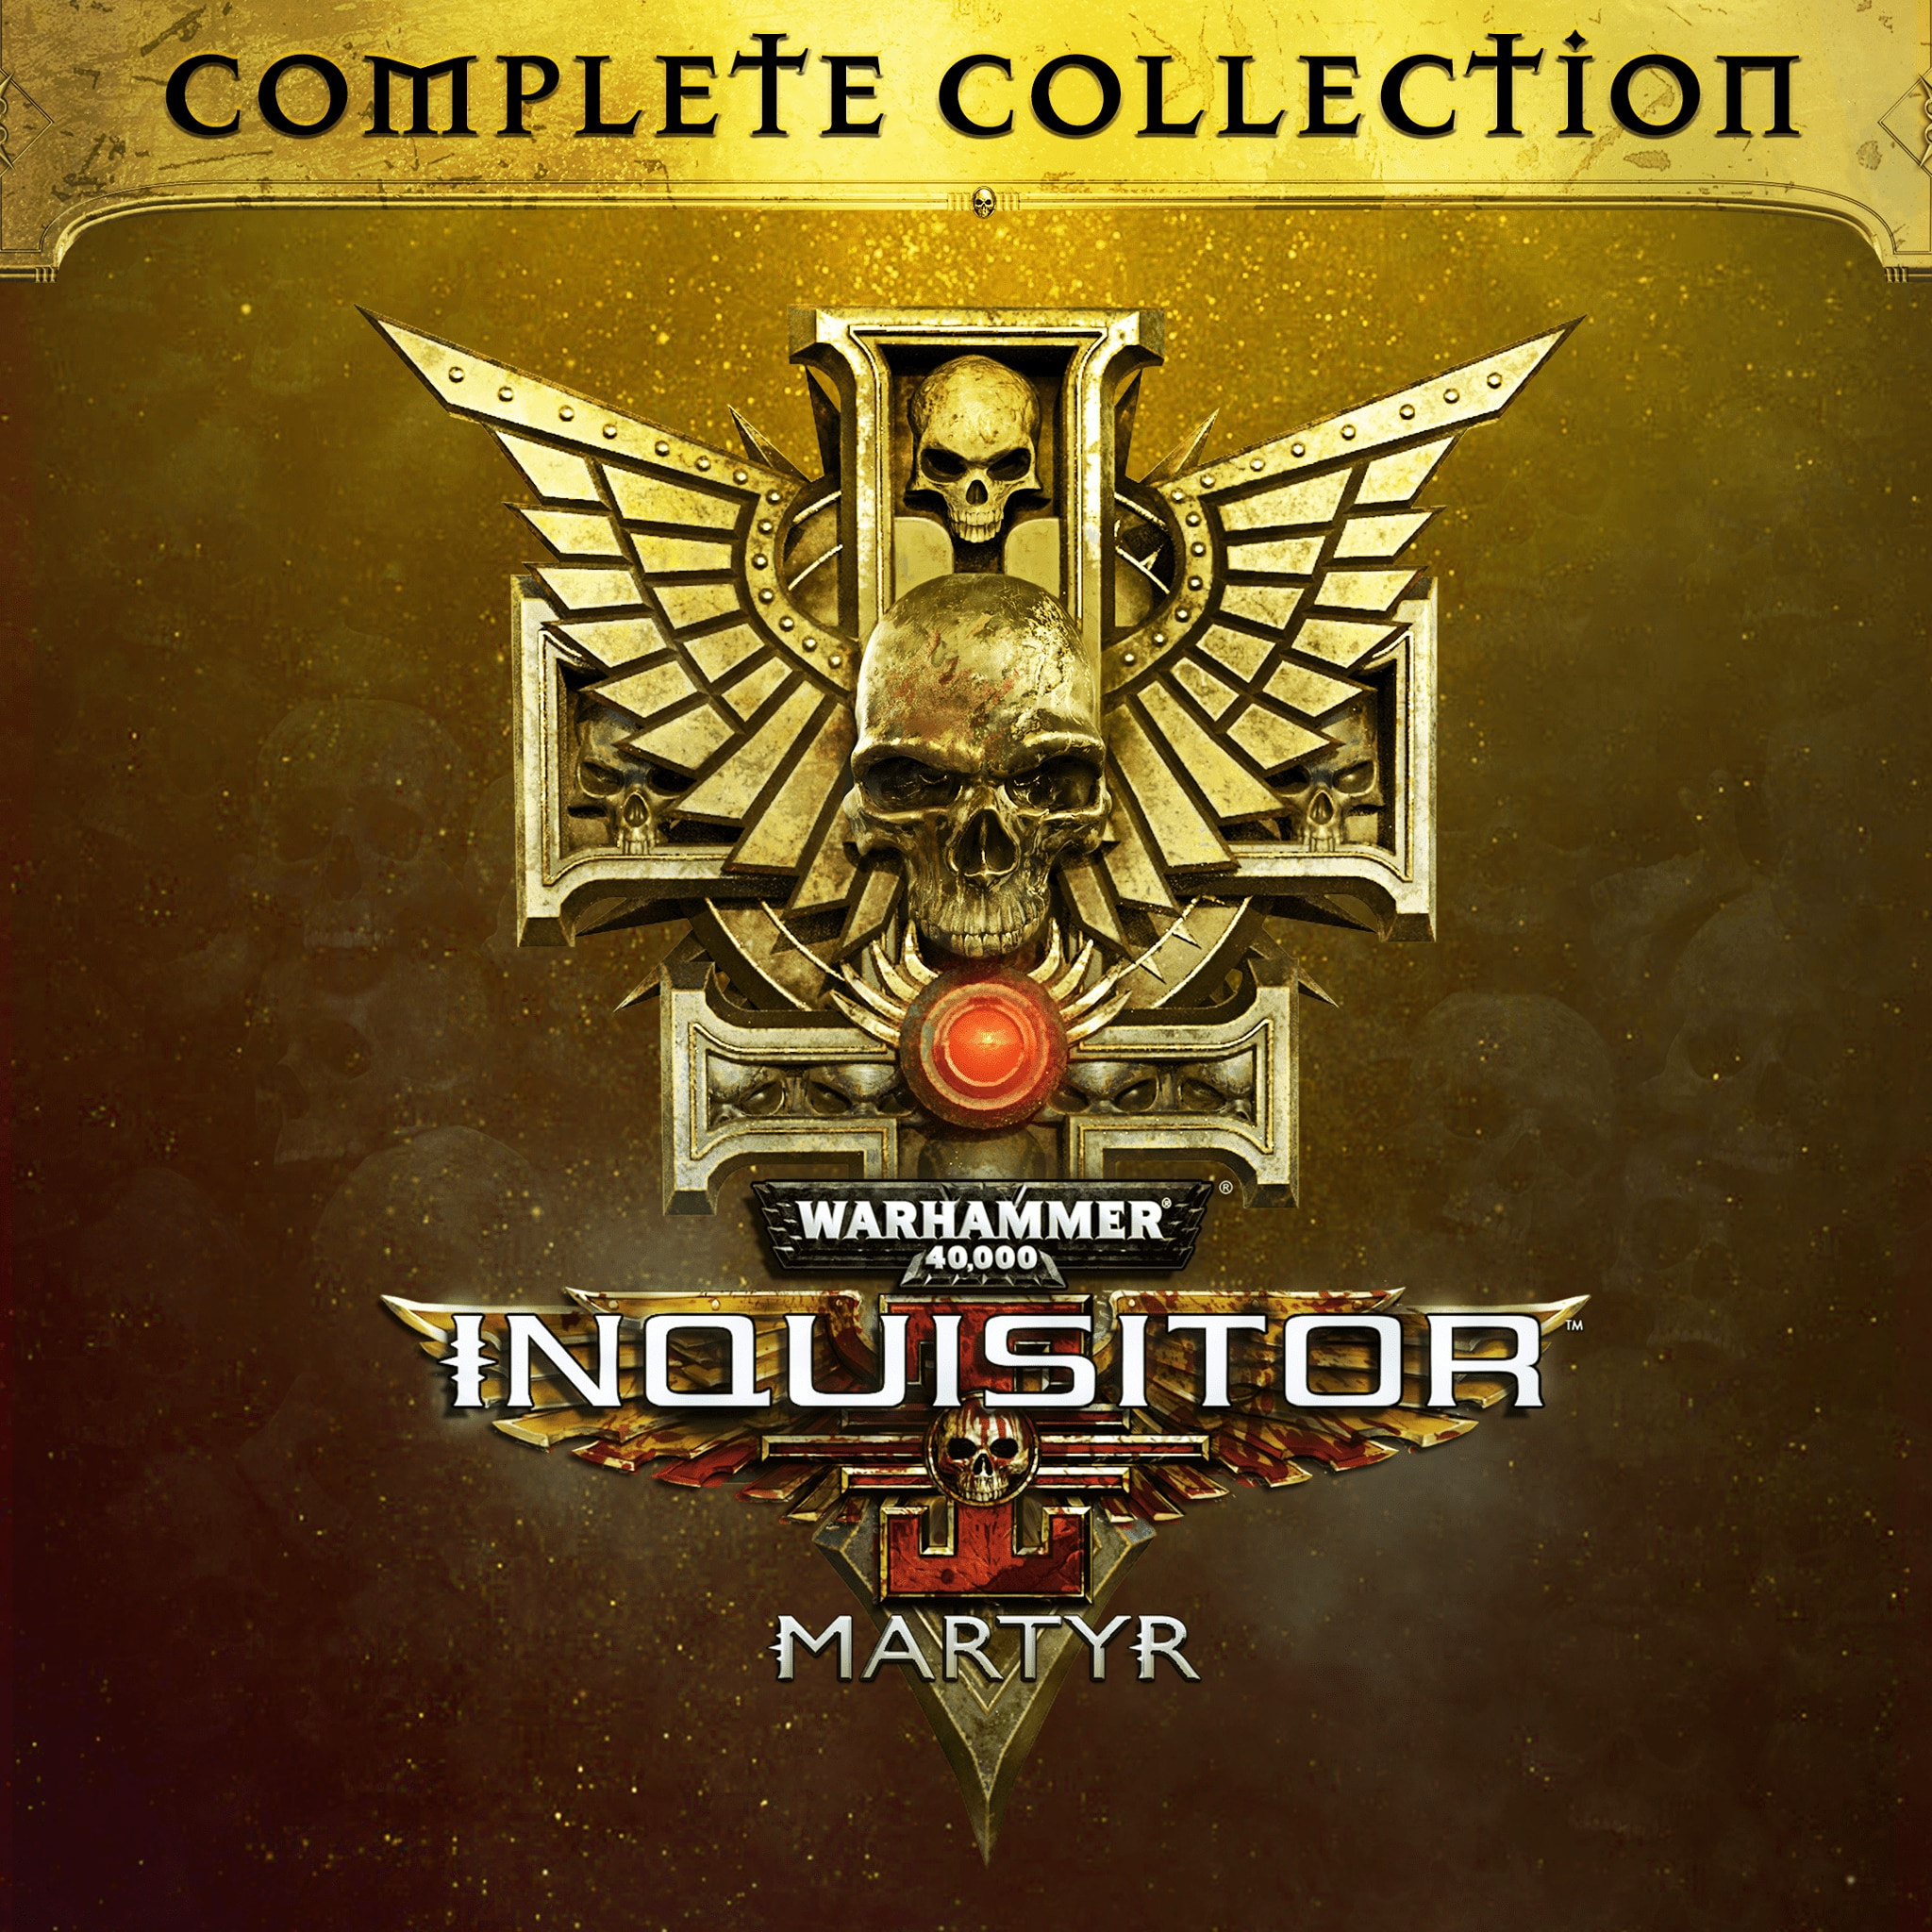 Warhammer 40,000: Inquisitor - Martyr Complete Collection